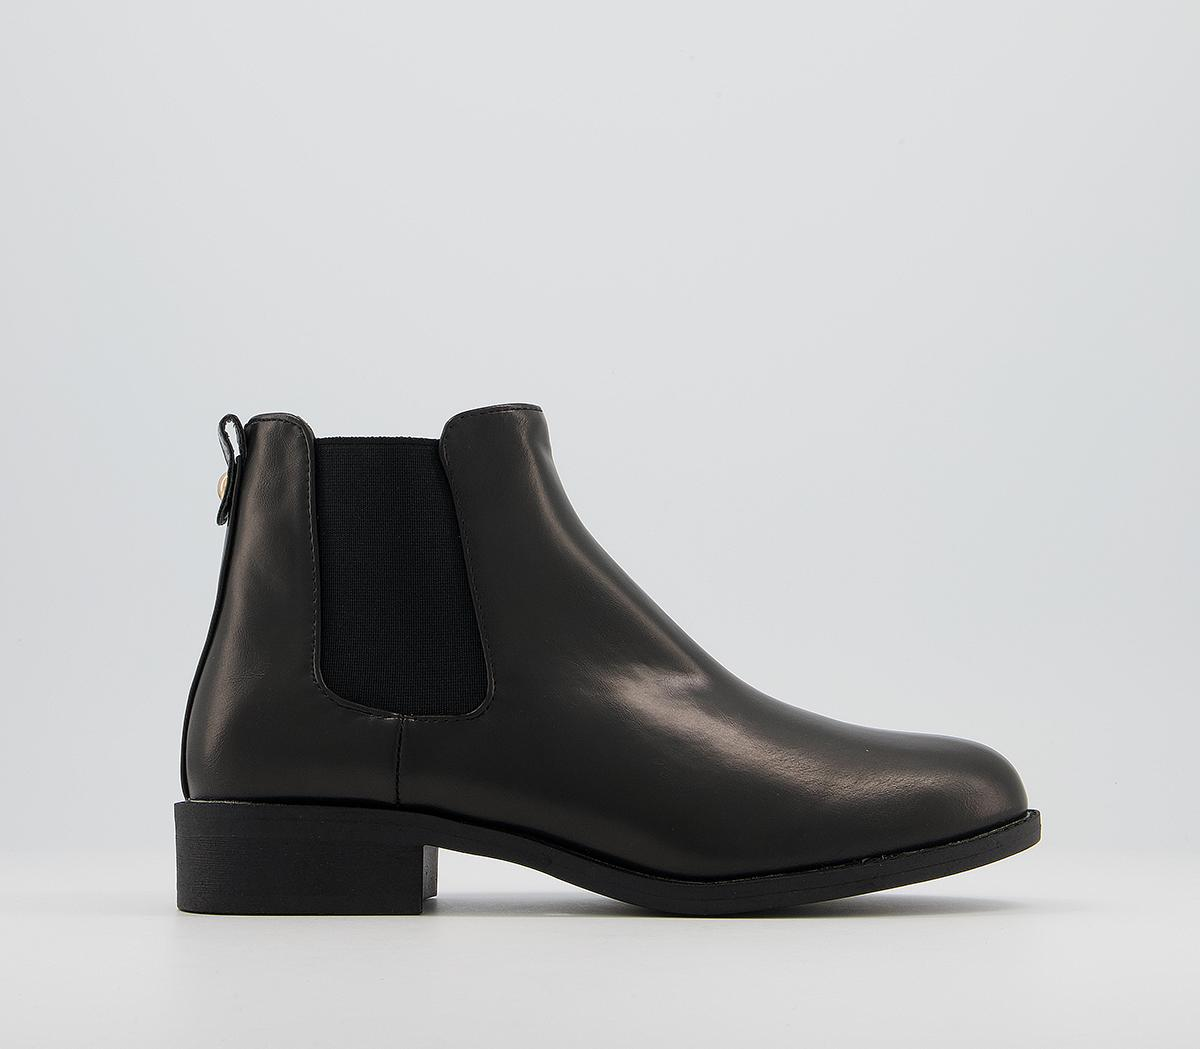 Ariana Casual Chelsea Ankle Boots